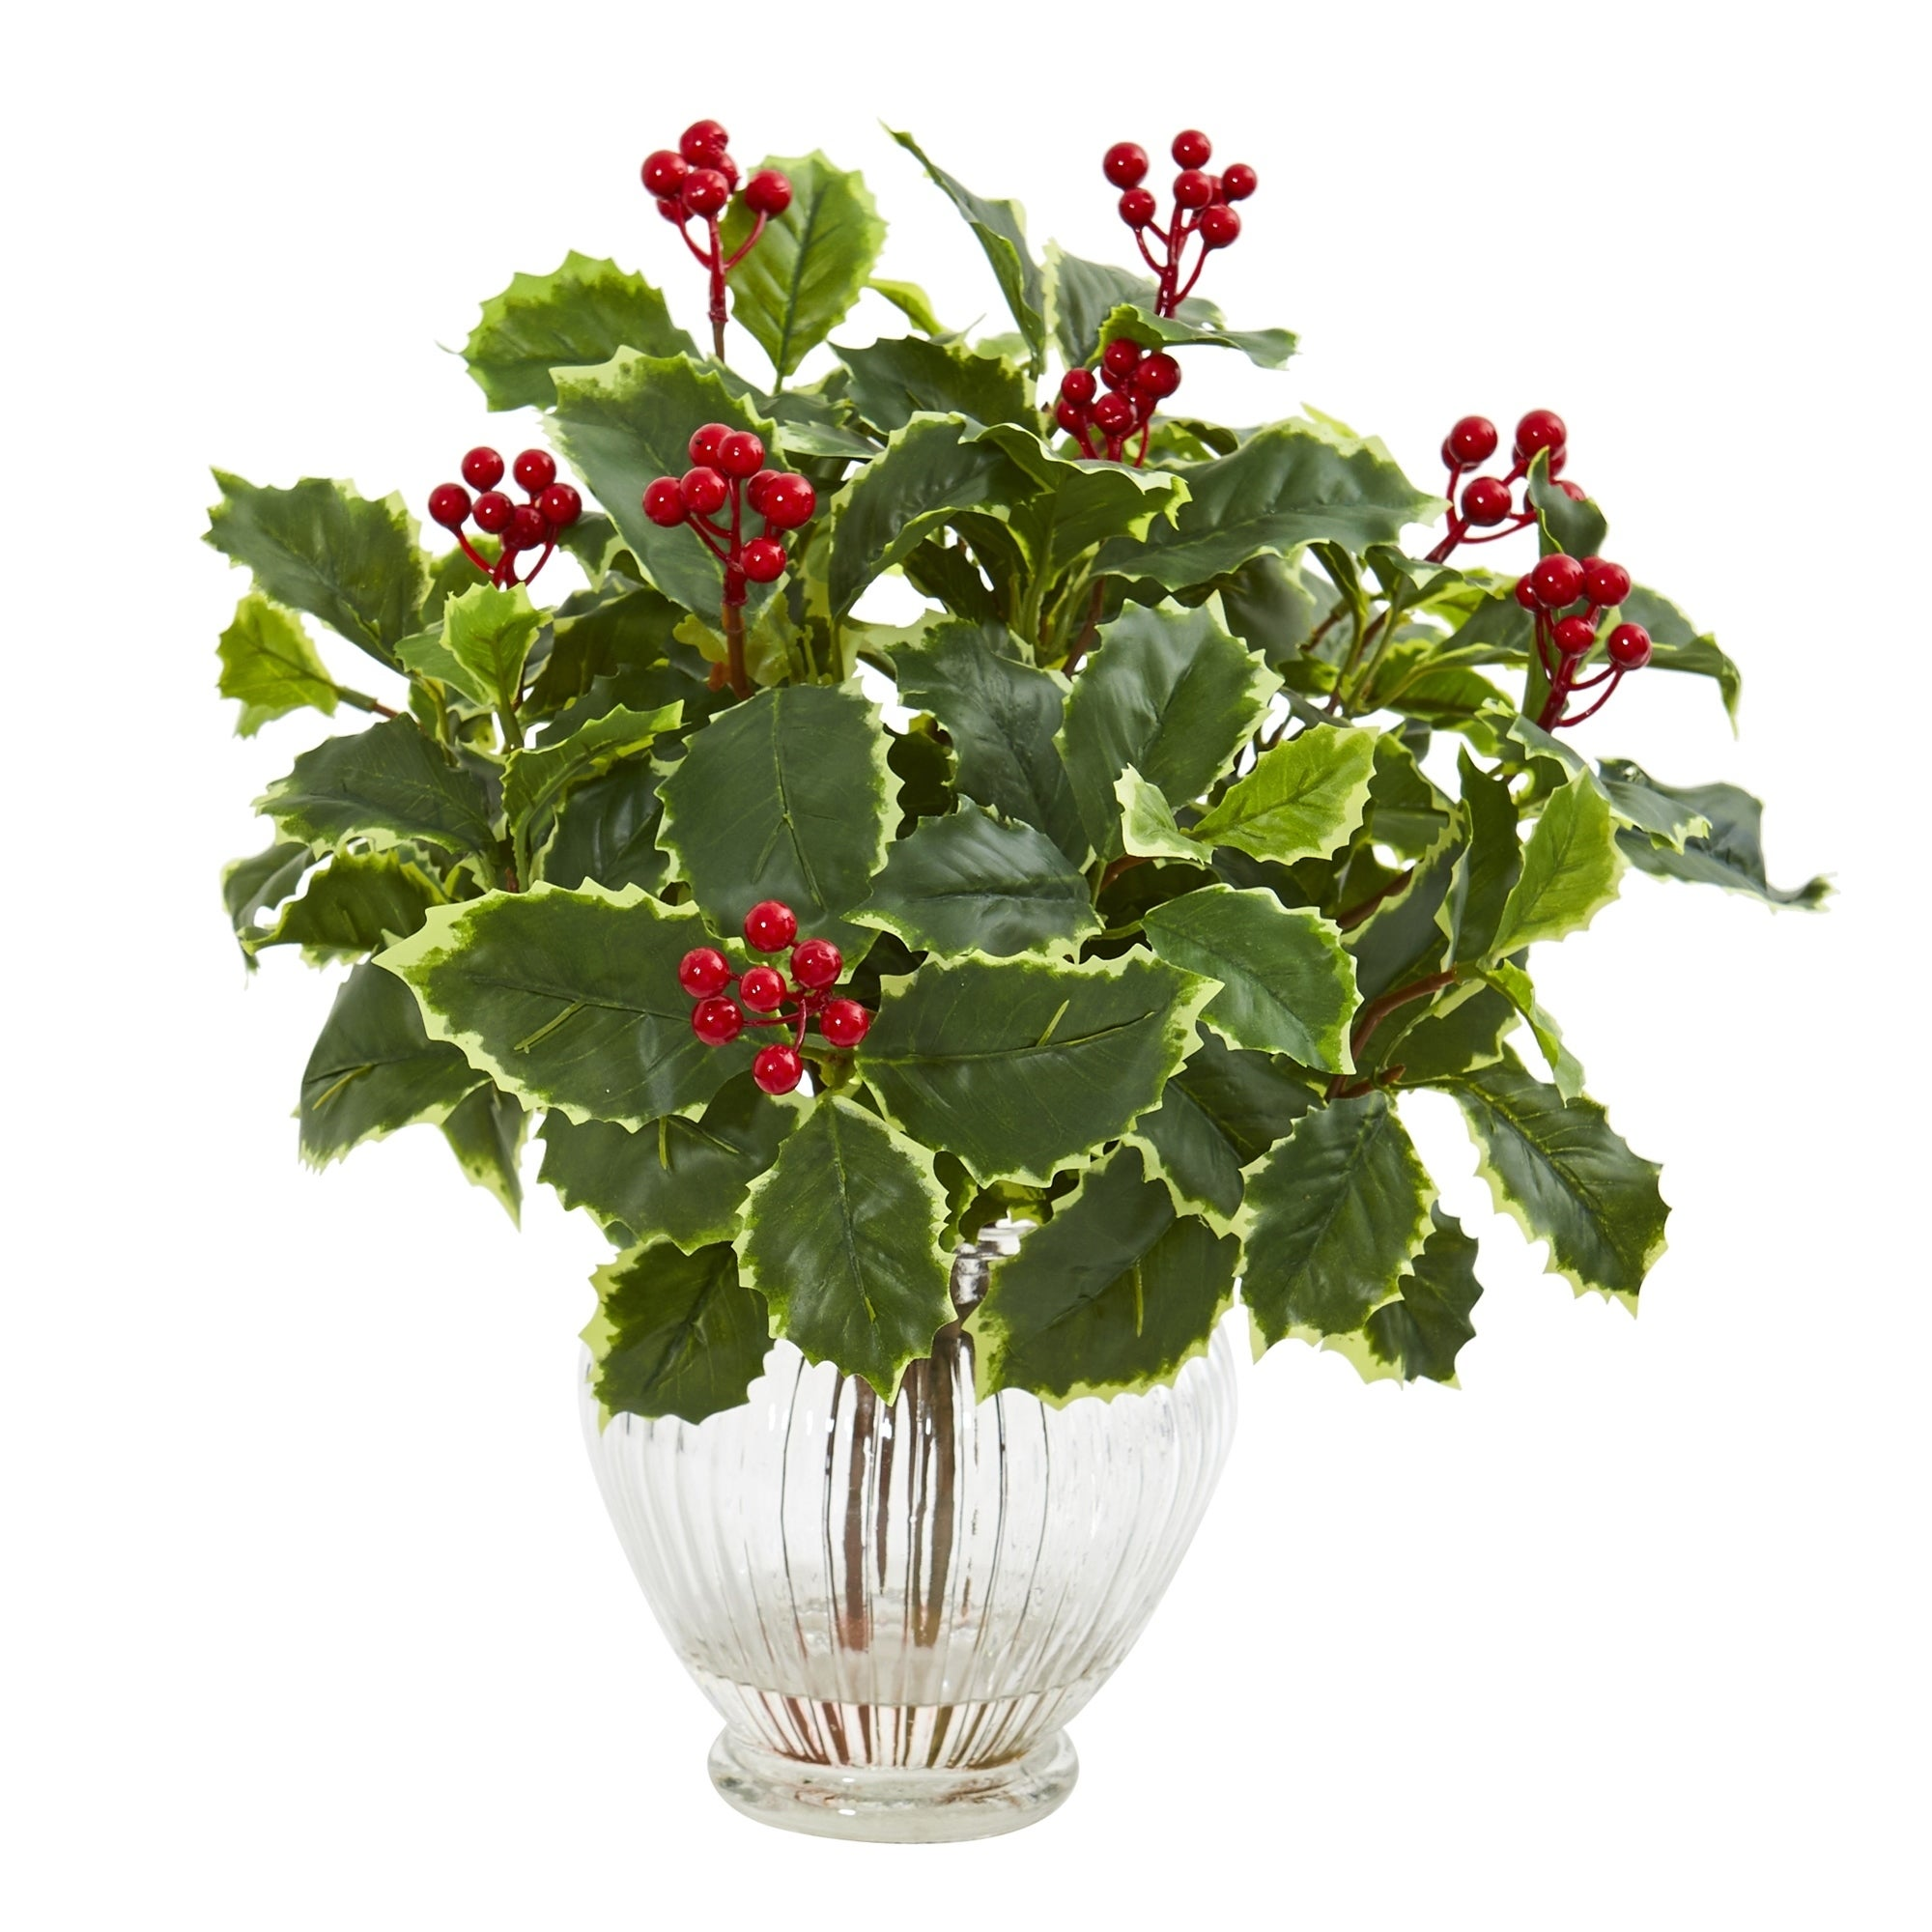 15 Variegated Holly Leaf Artificial Plant in Vase (Real Touch)